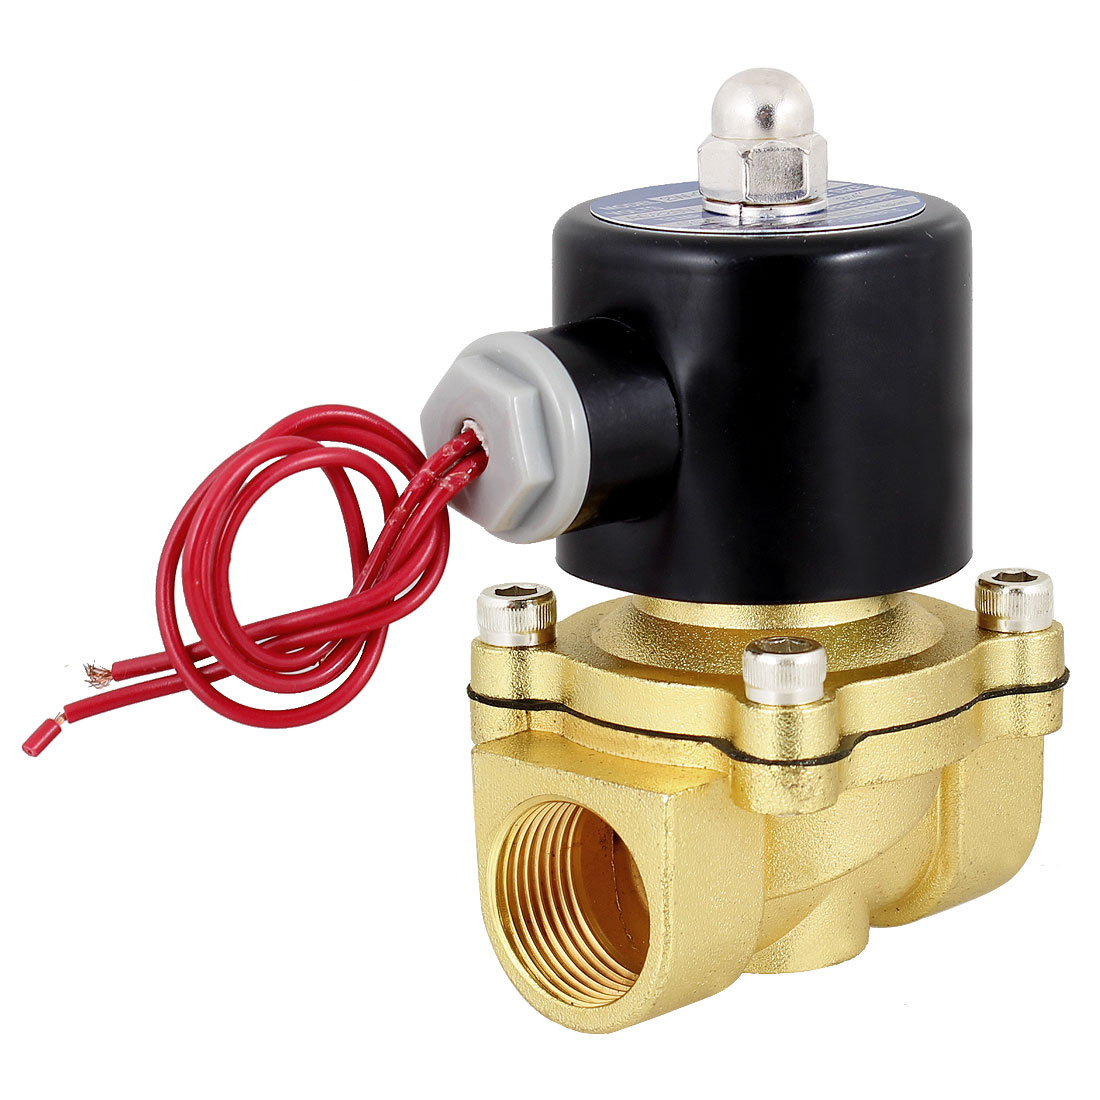 "NC PT 3/4"" Port 2 Way 2 Positions Water Air Oil Electric Solenoid Valve"